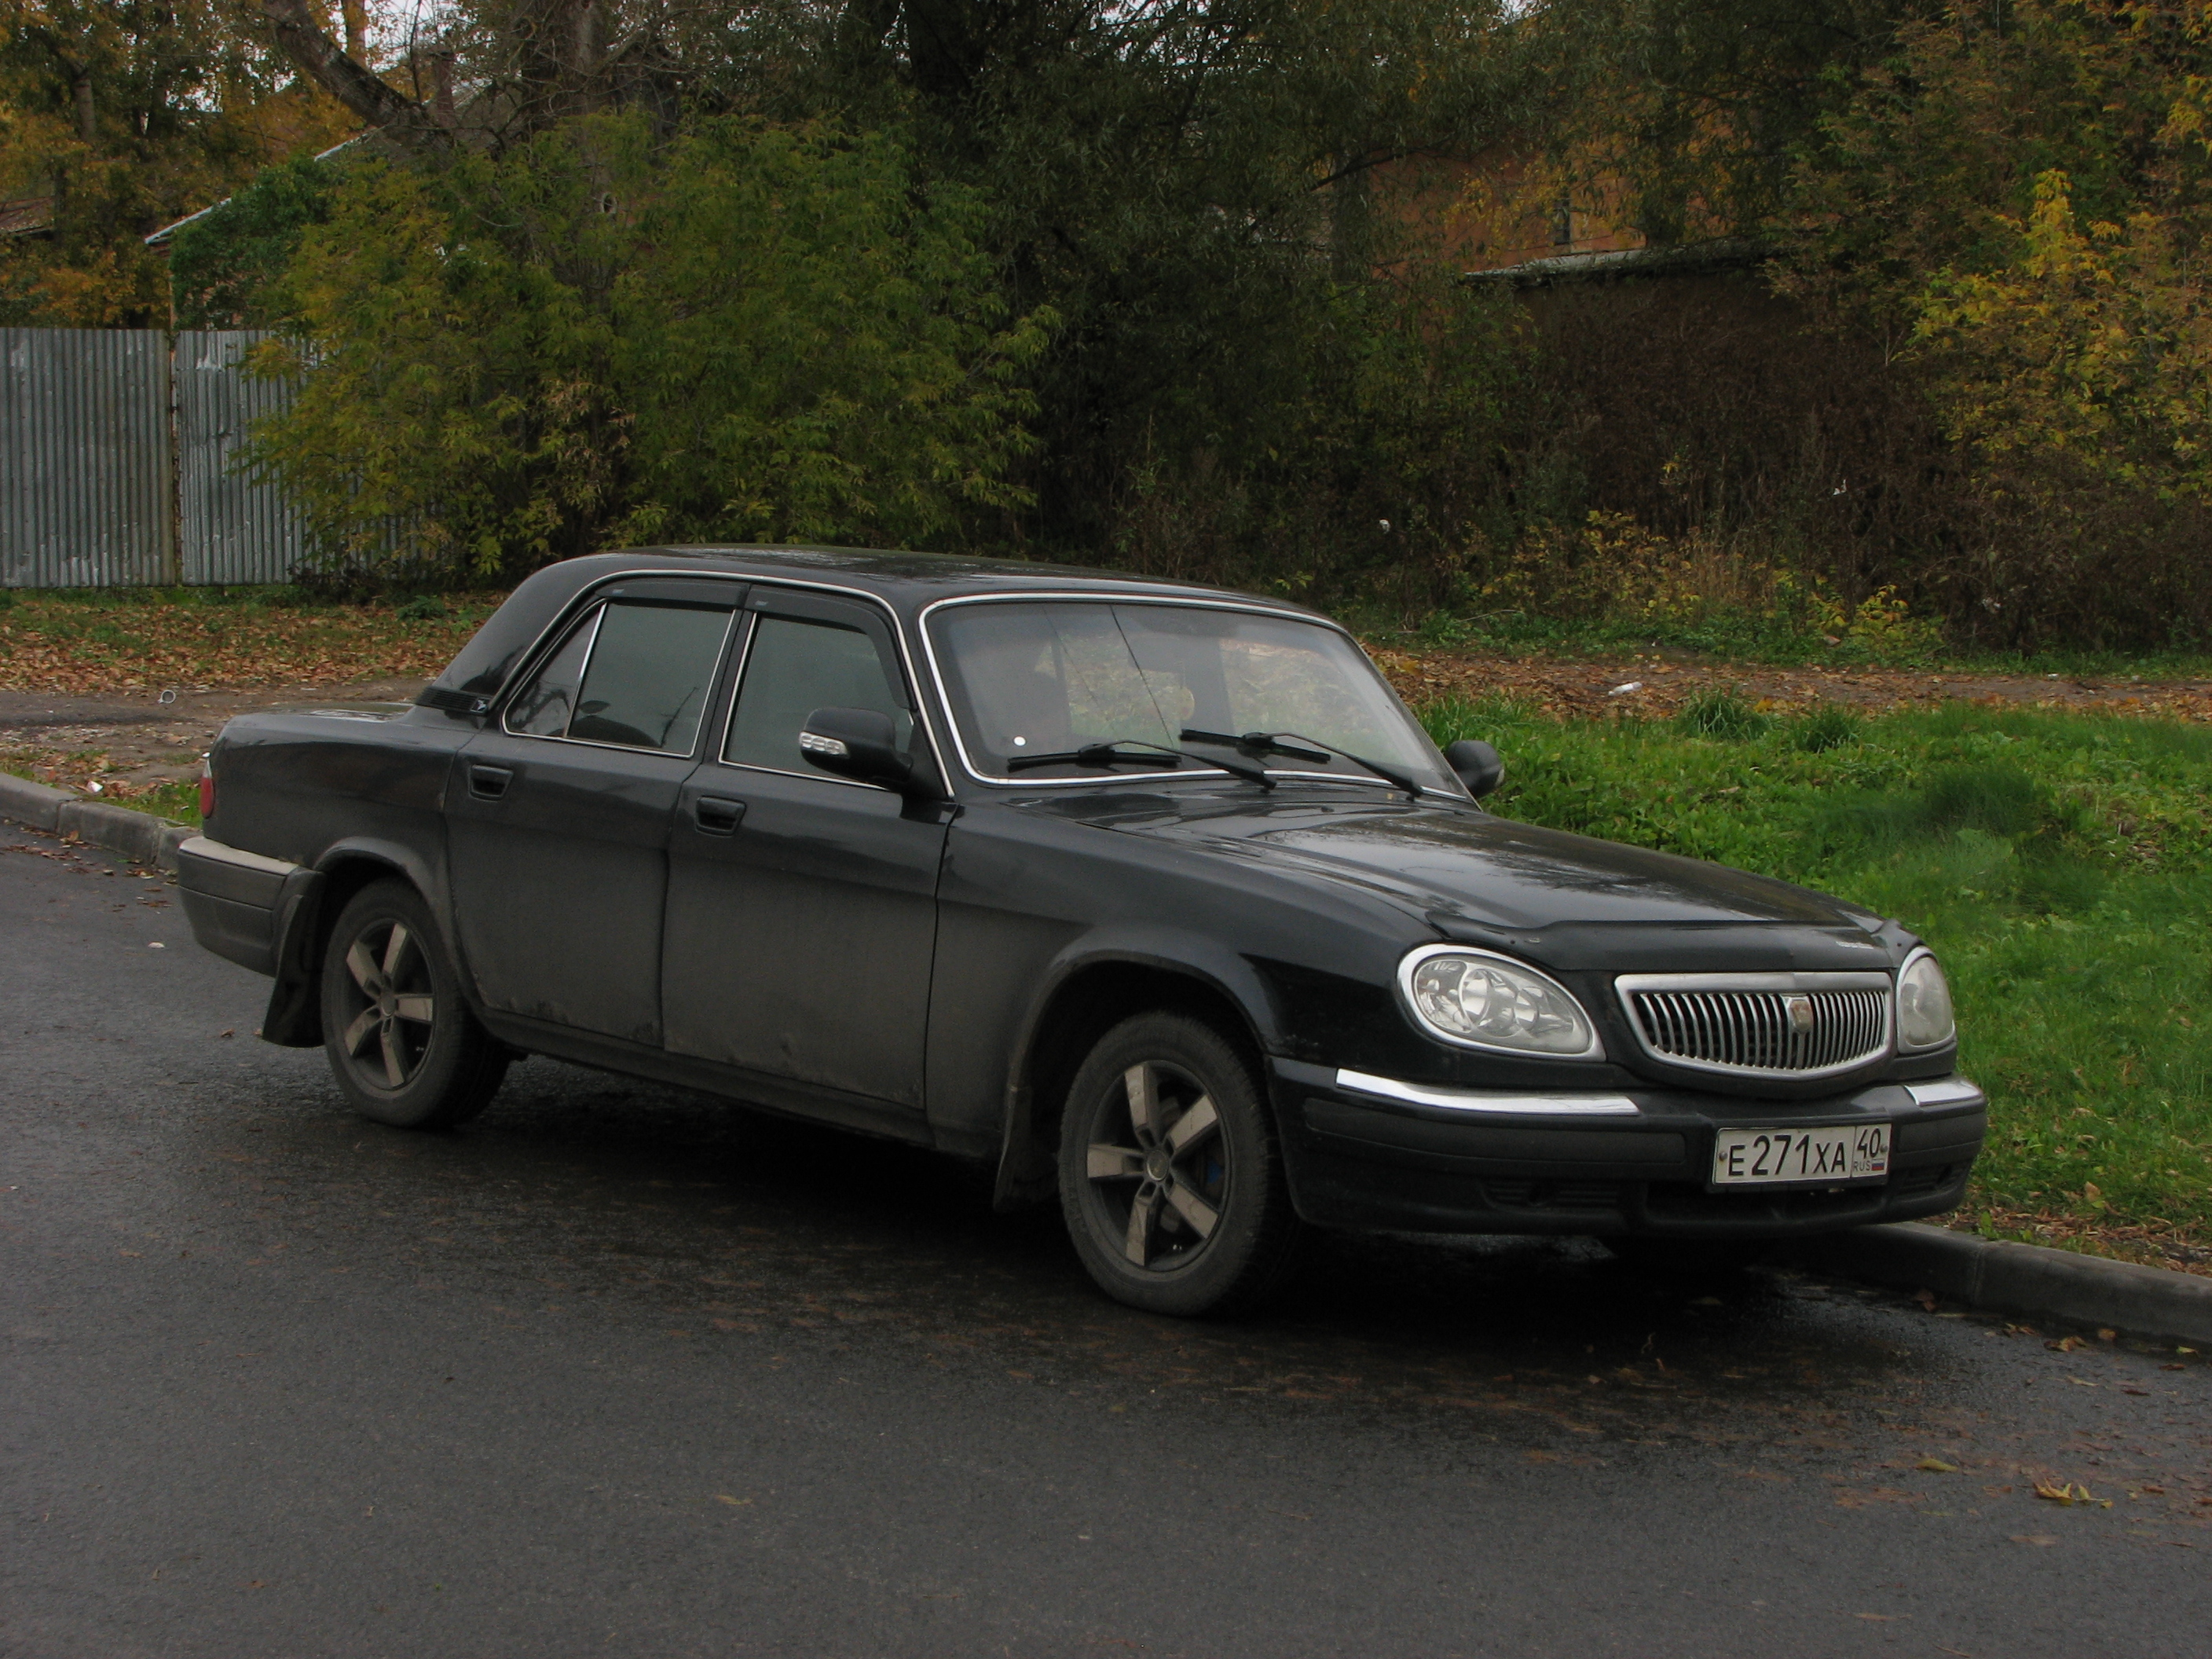 GAZ 31105: specifications, reviews and photos 84